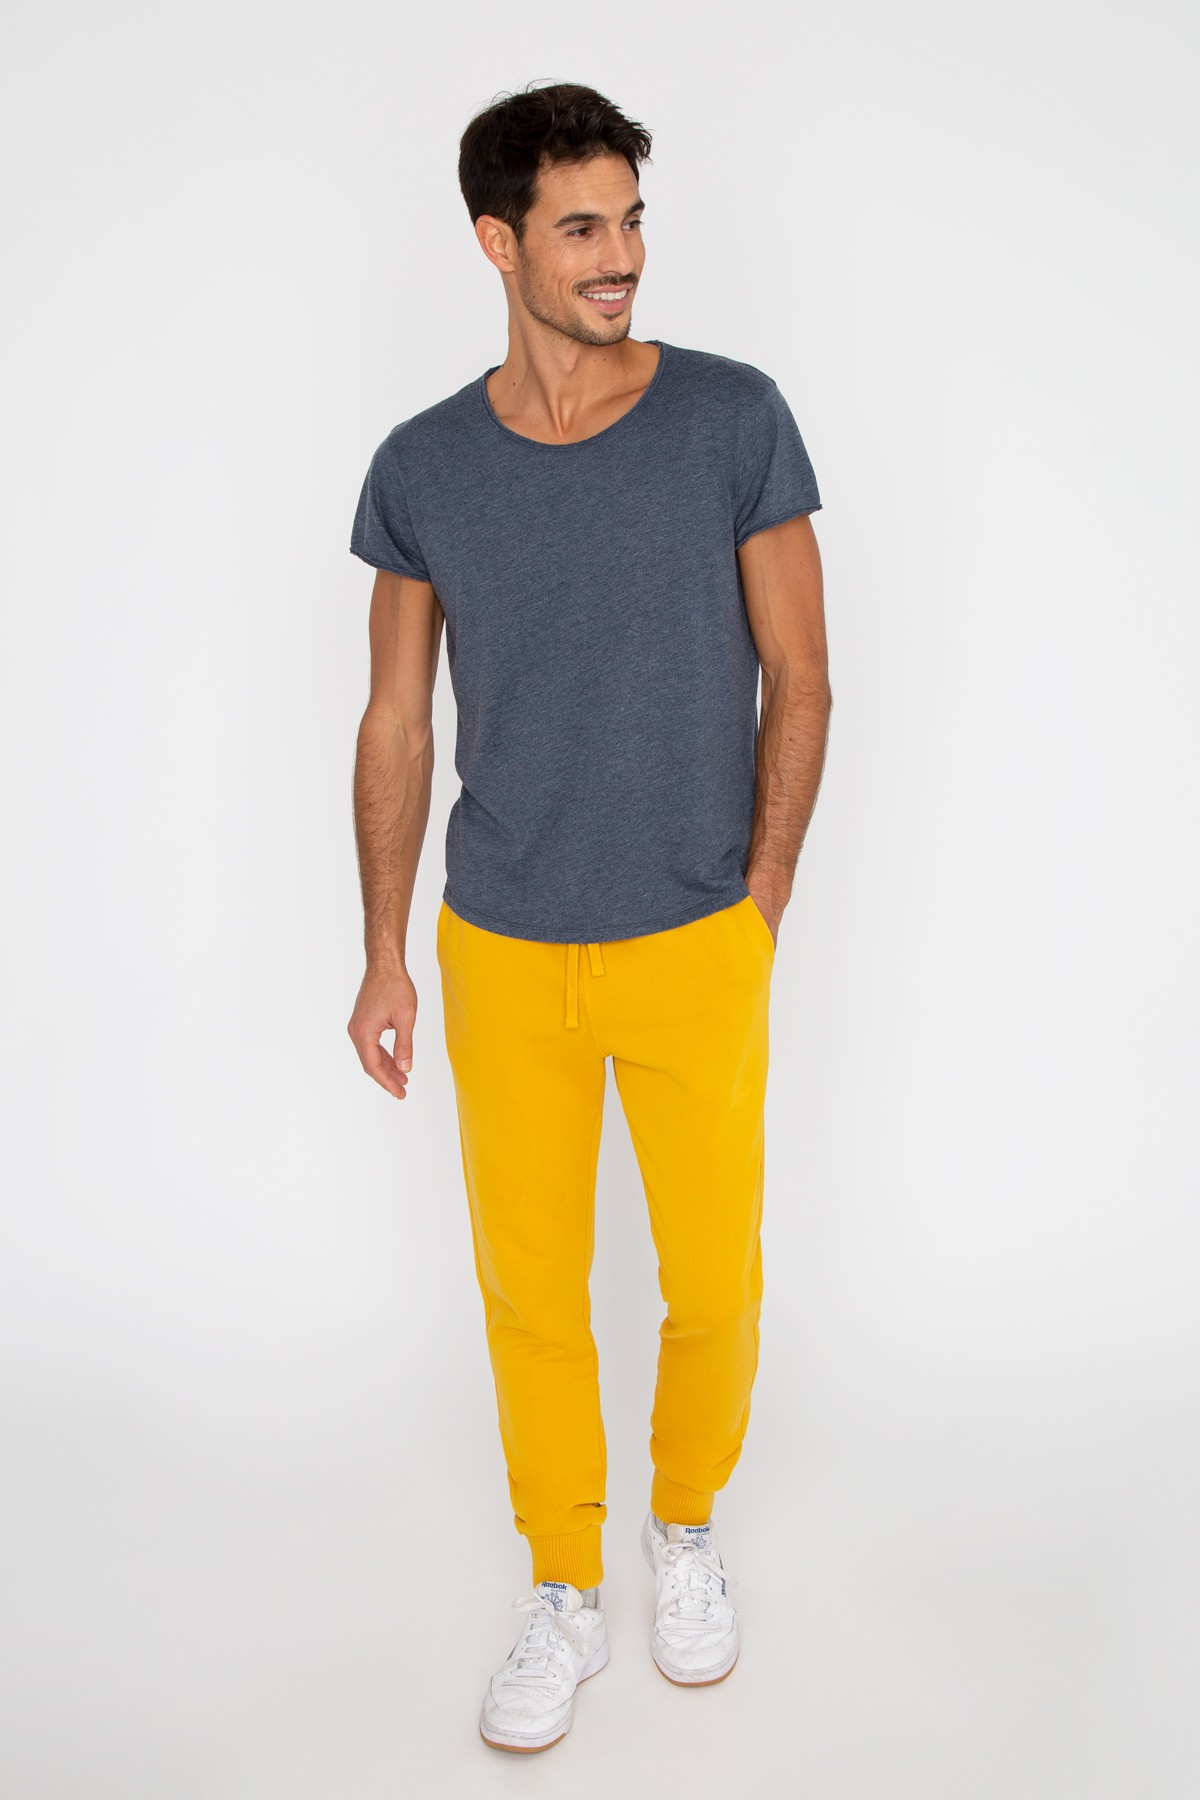 Harlem Men's Jogger